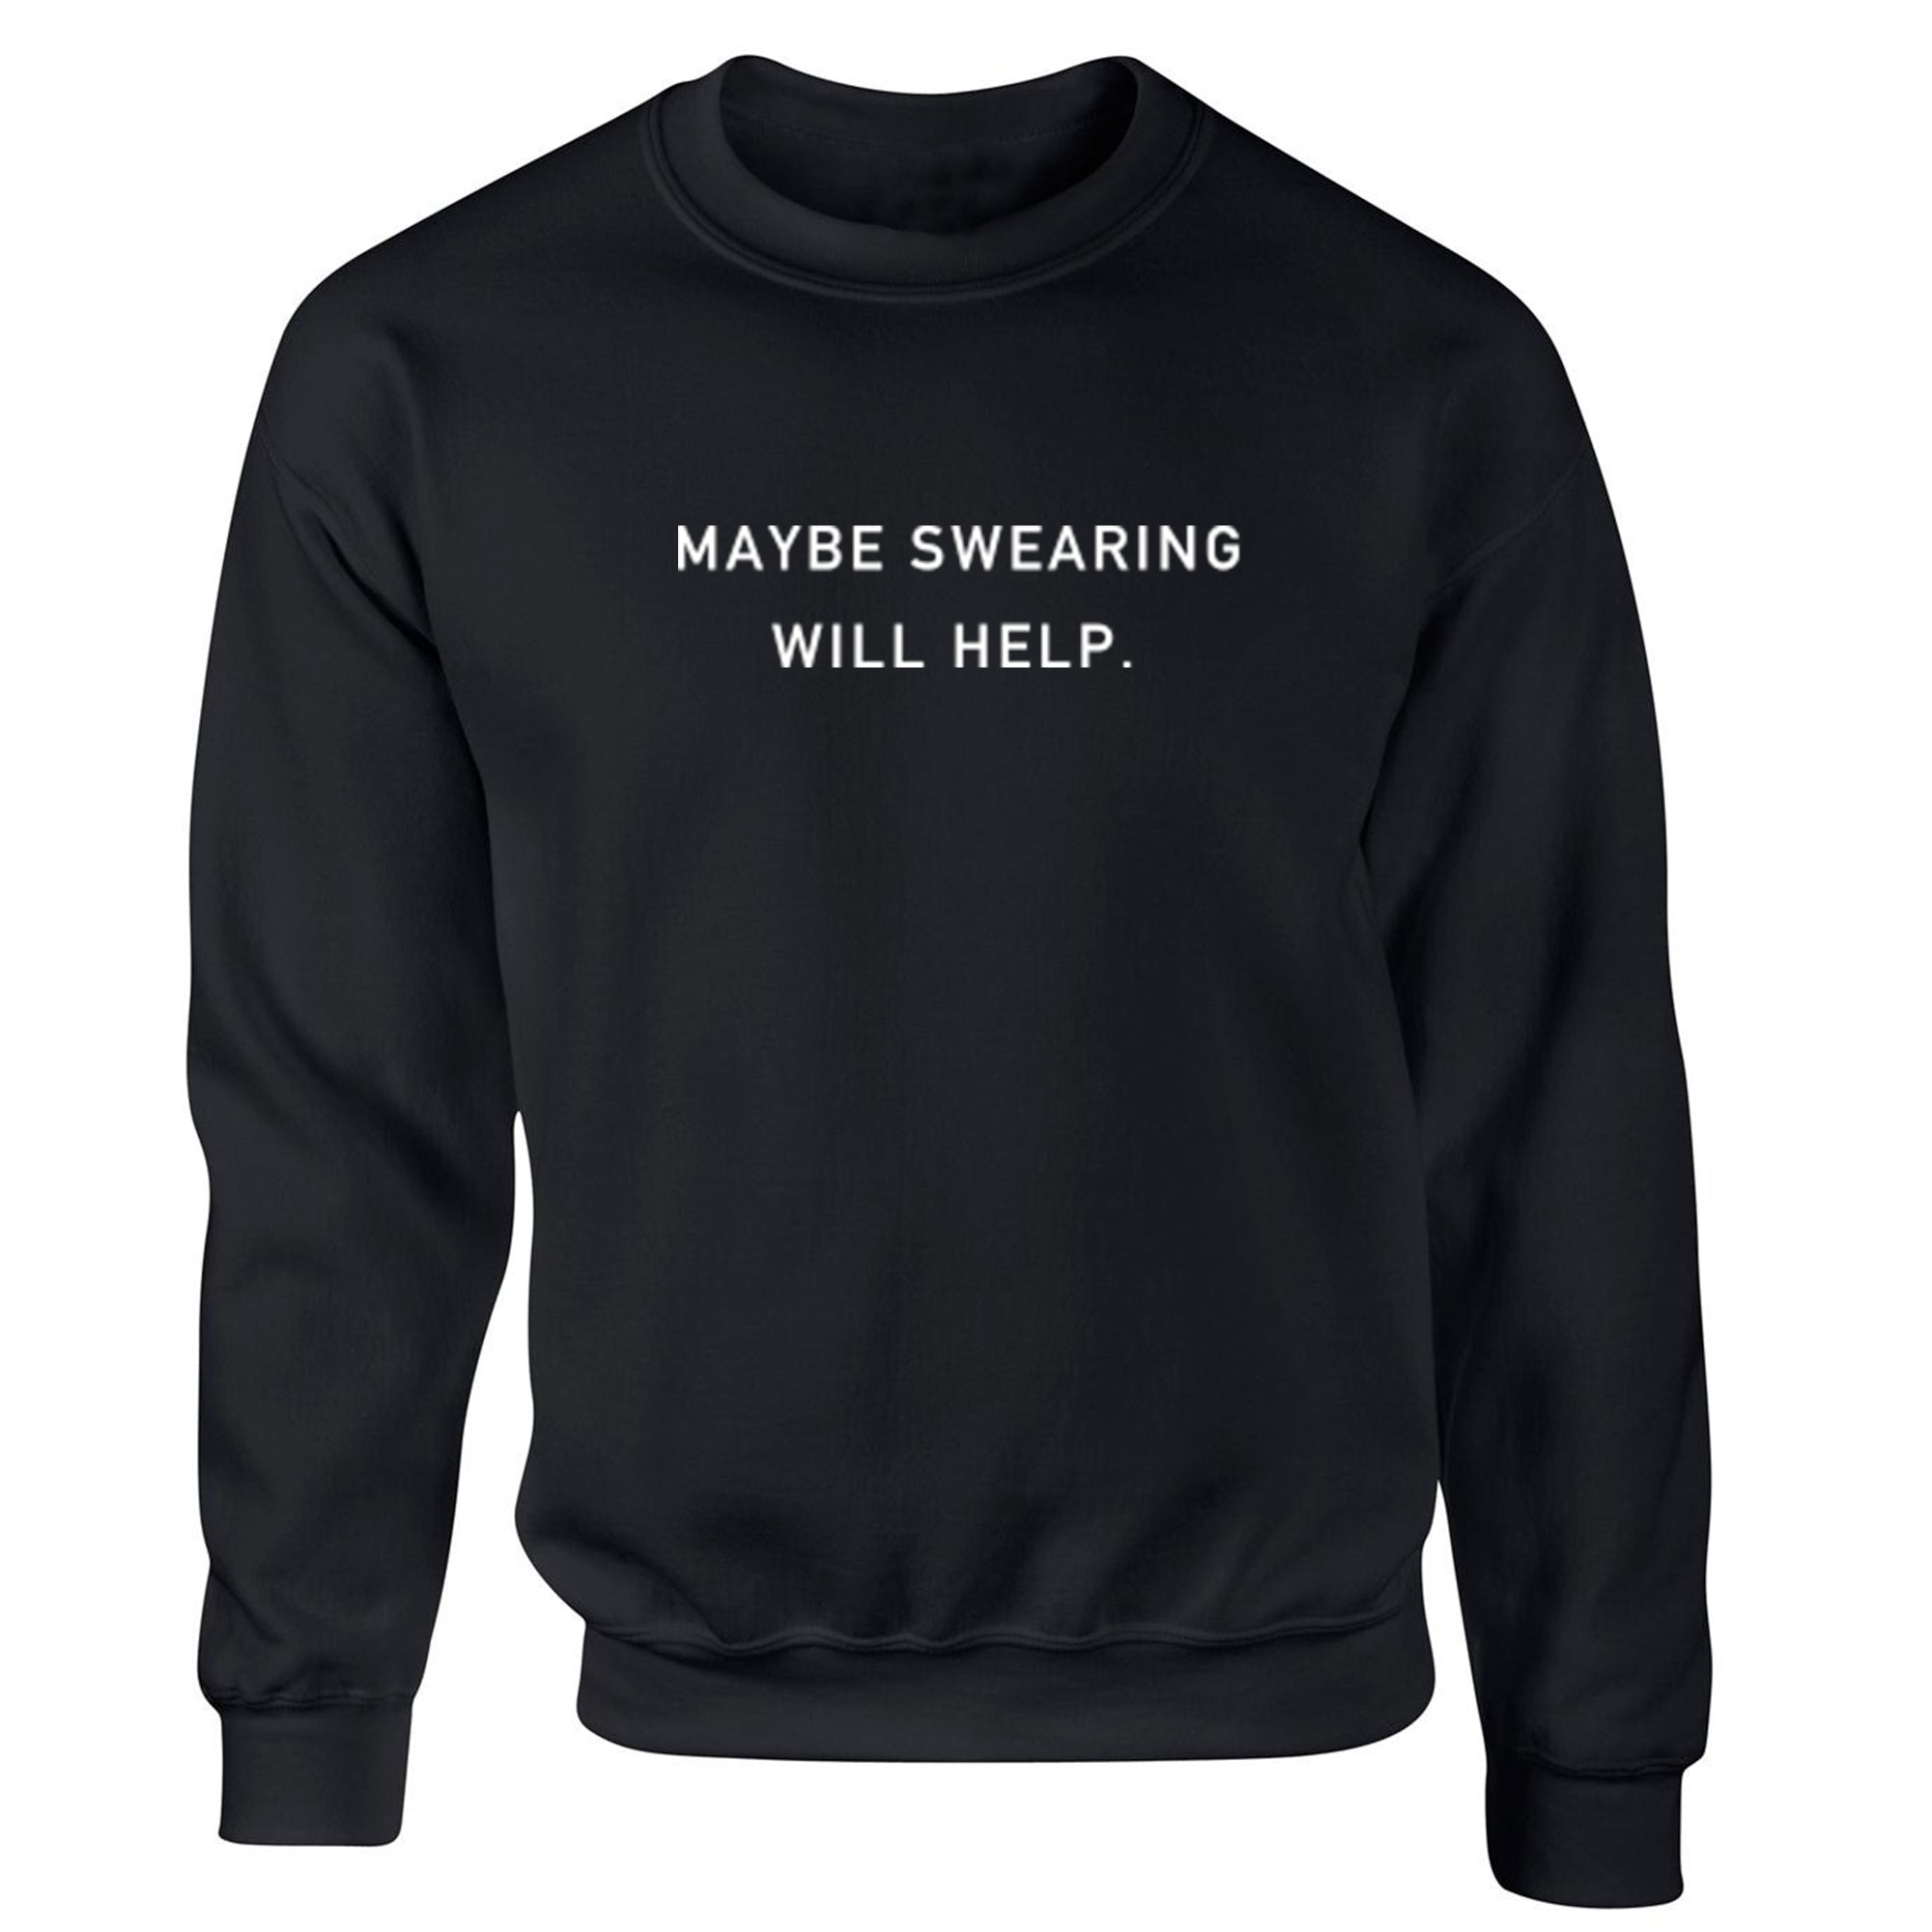 Maybe Swearing Will Help Unisex Jumper S1029 - Illustrated Identity Ltd.